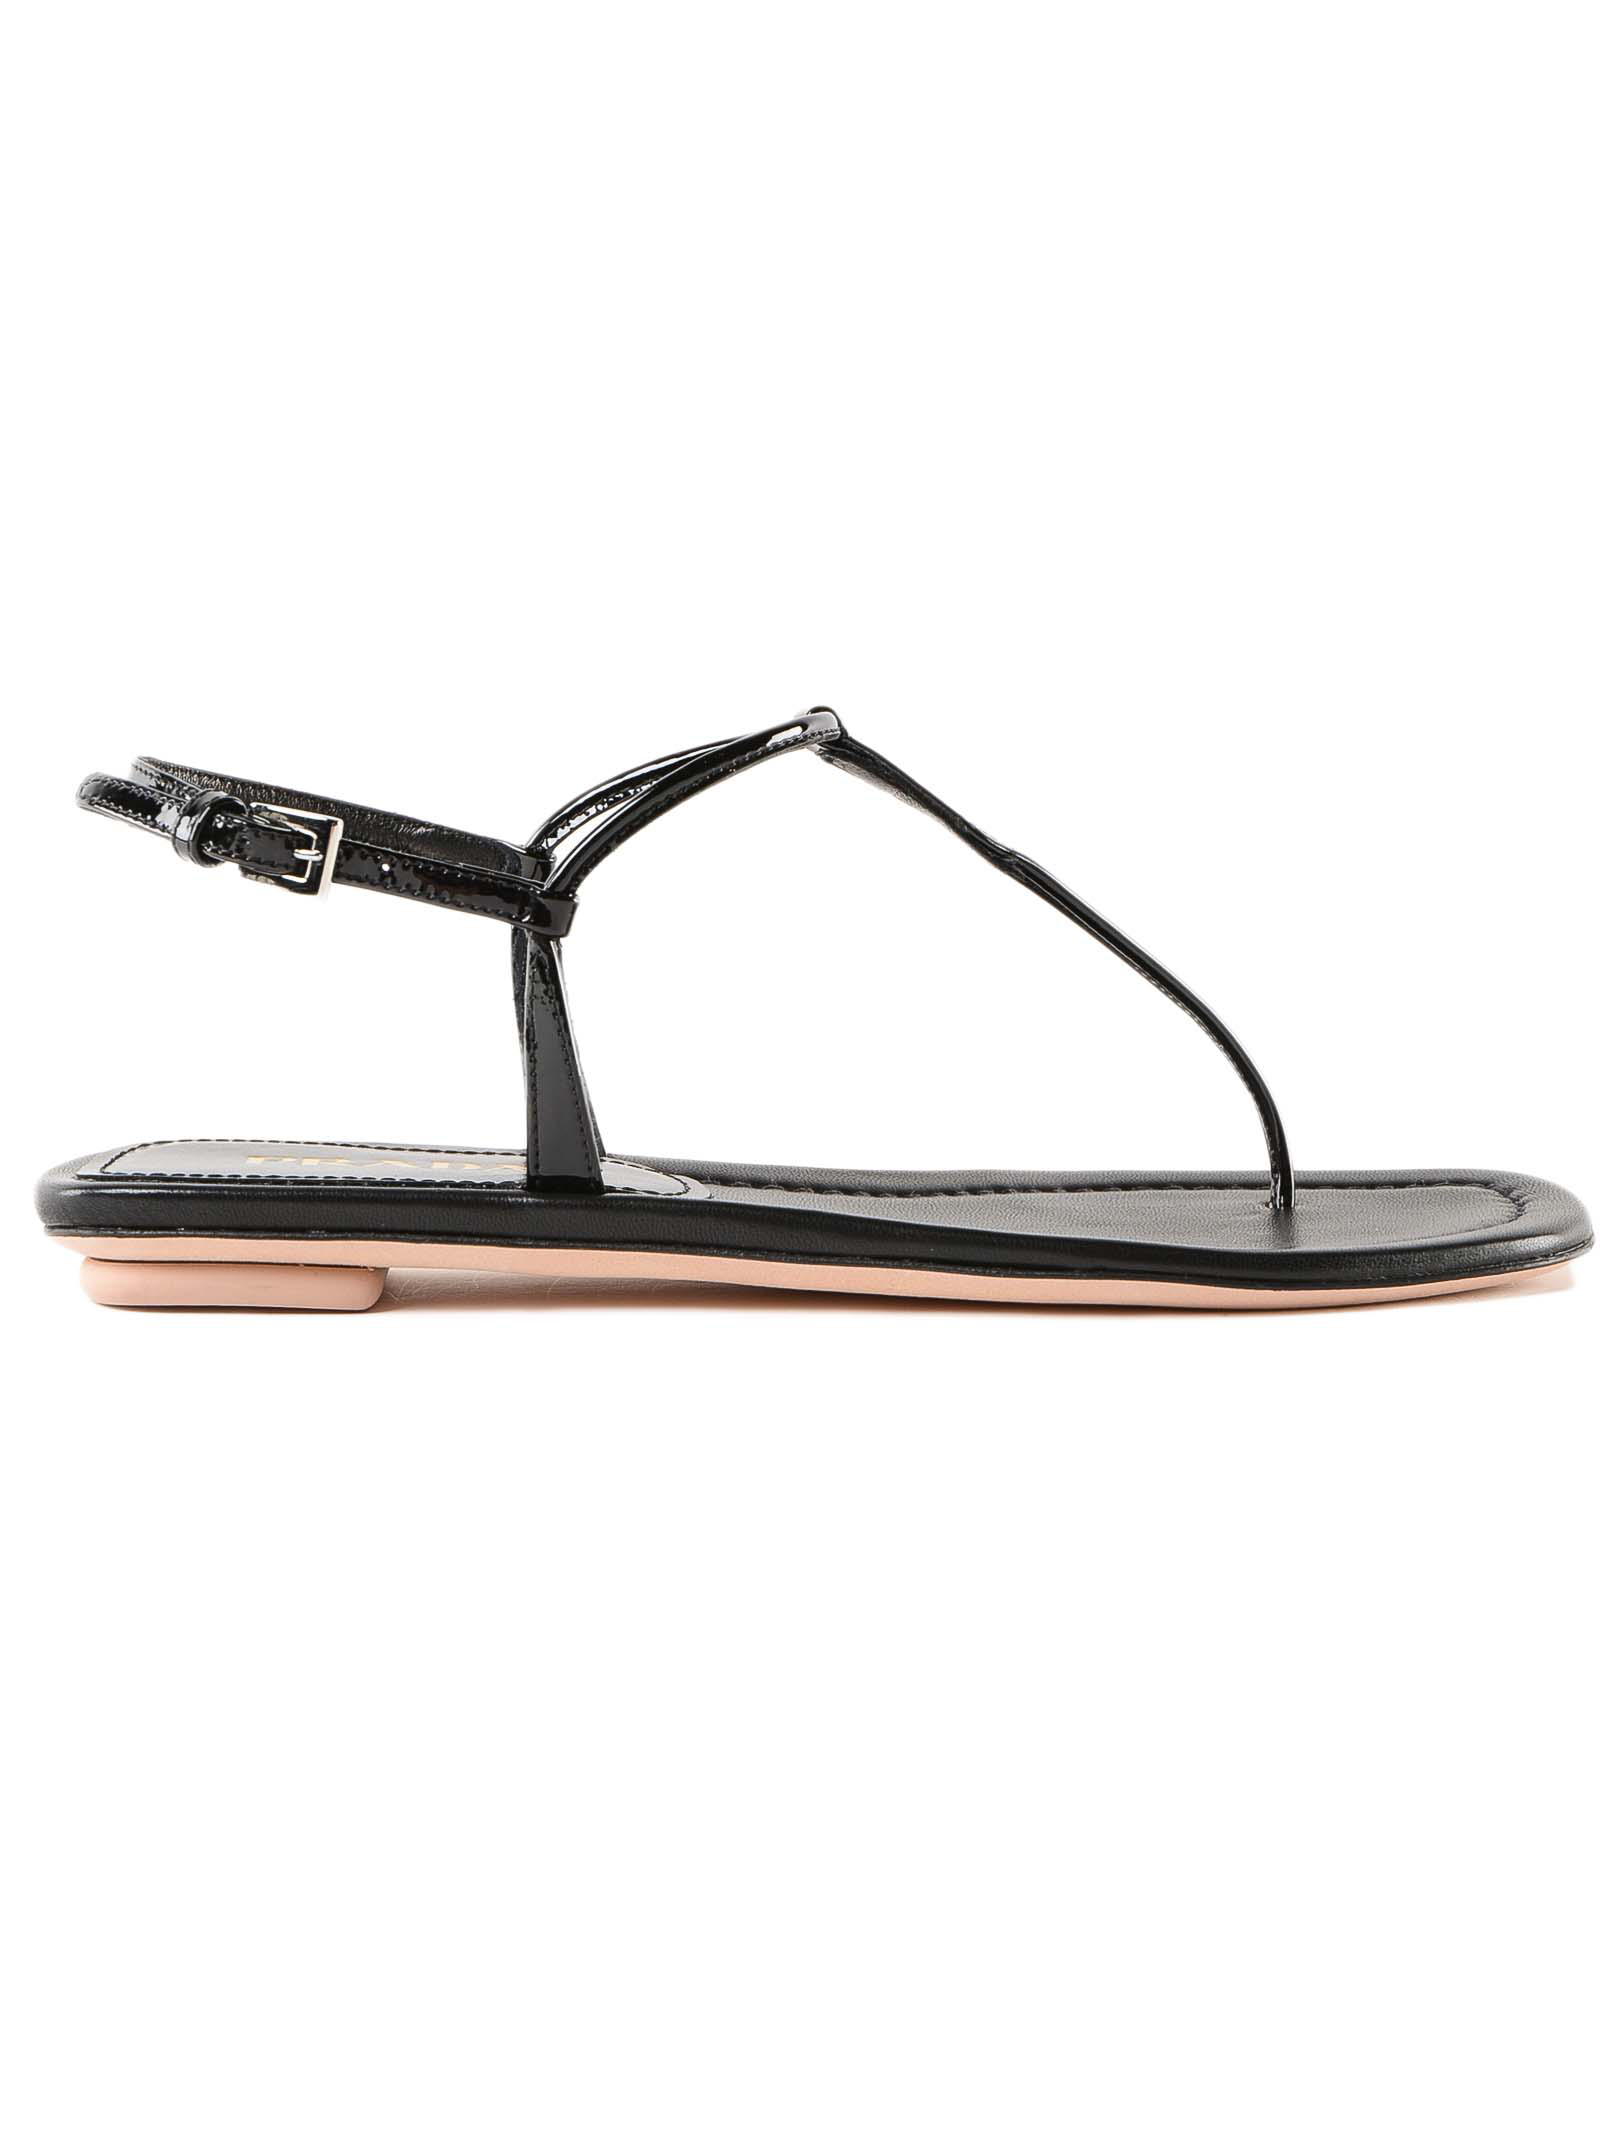 7d3c50e63 Prada Flat Patent Leather Thong Sandals In Black